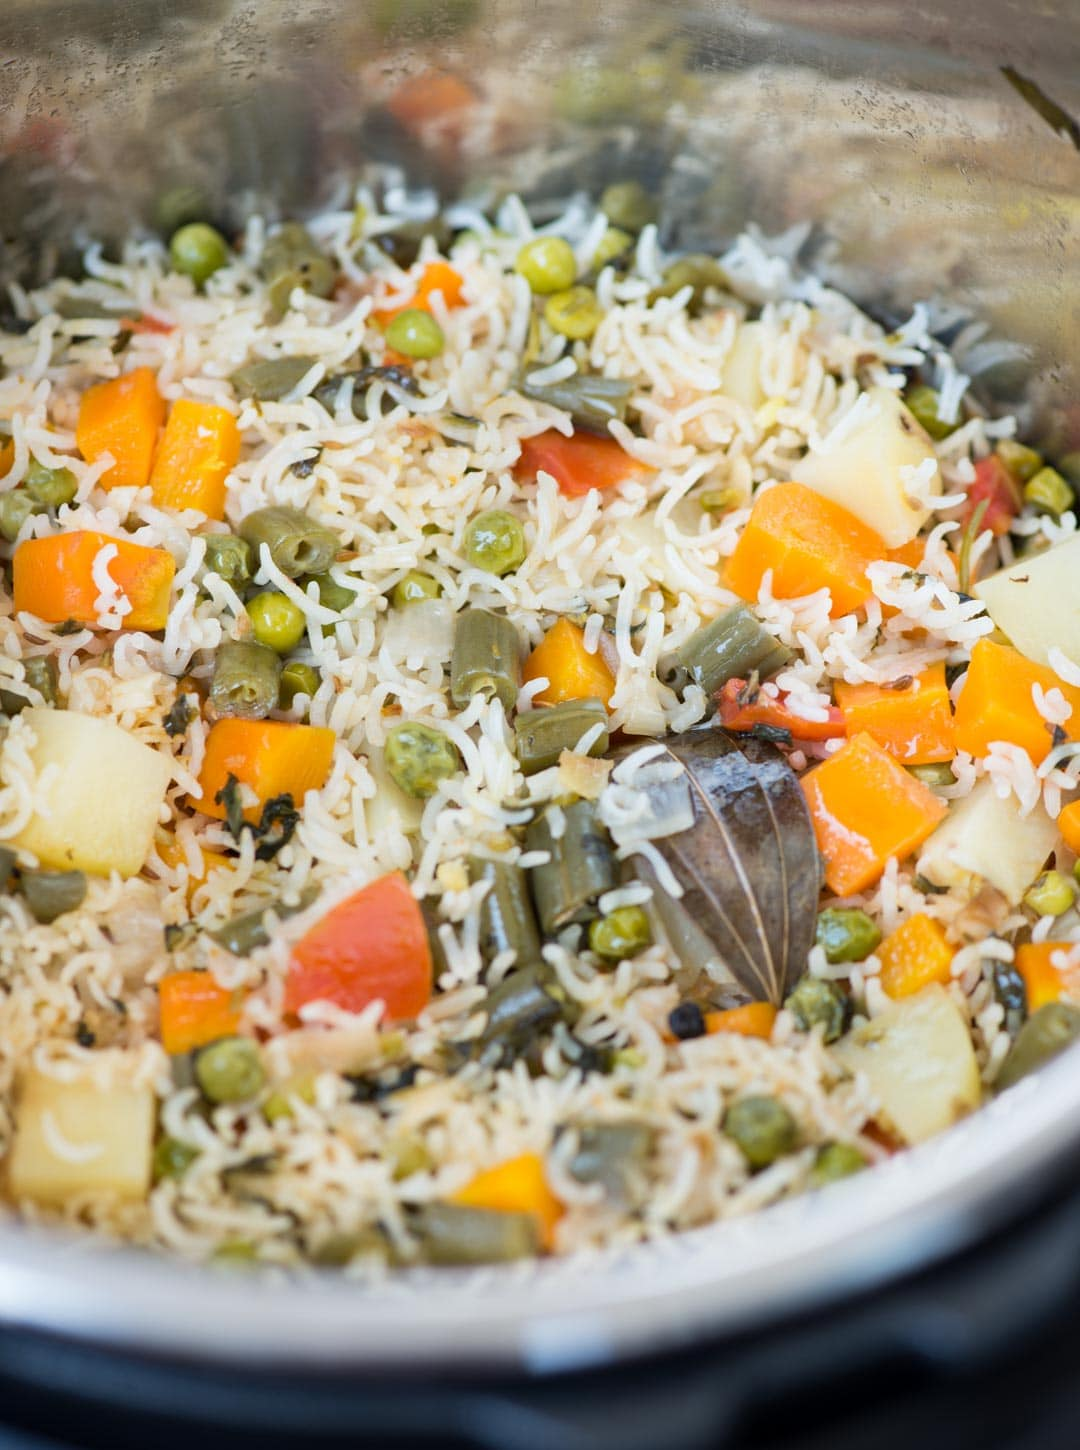 Veg Pualo is an Indian style rice pilaf made with long grain basmati rice, an array of vegetables and whole spices. This fragrant one-pot dish can be made on stove top, in a pressure cooker or in an Instant Pot.